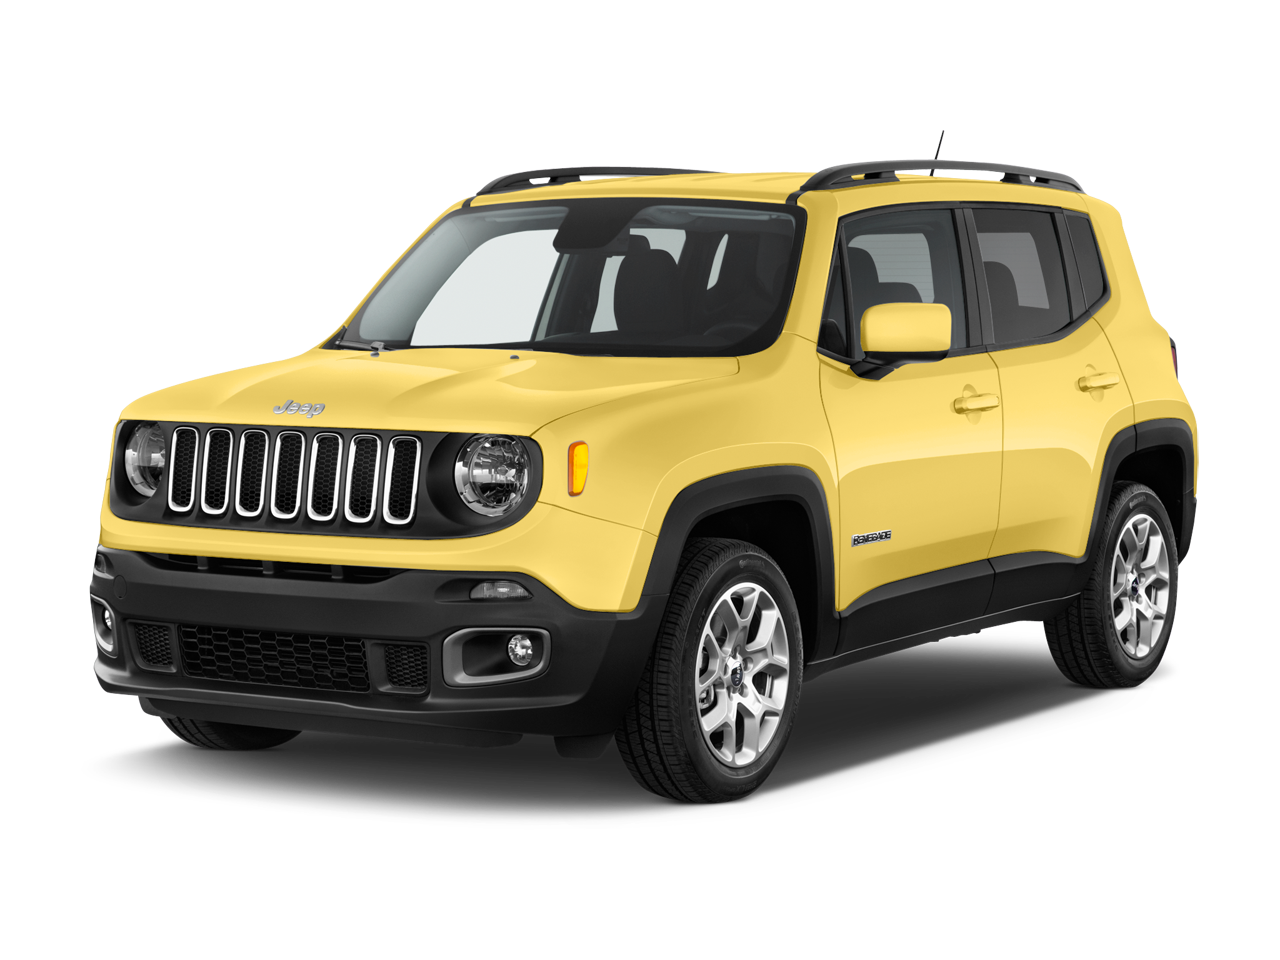 chrysler dodge jeep ram dealer incentives david stanley dodge. Cars Review. Best American Auto & Cars Review